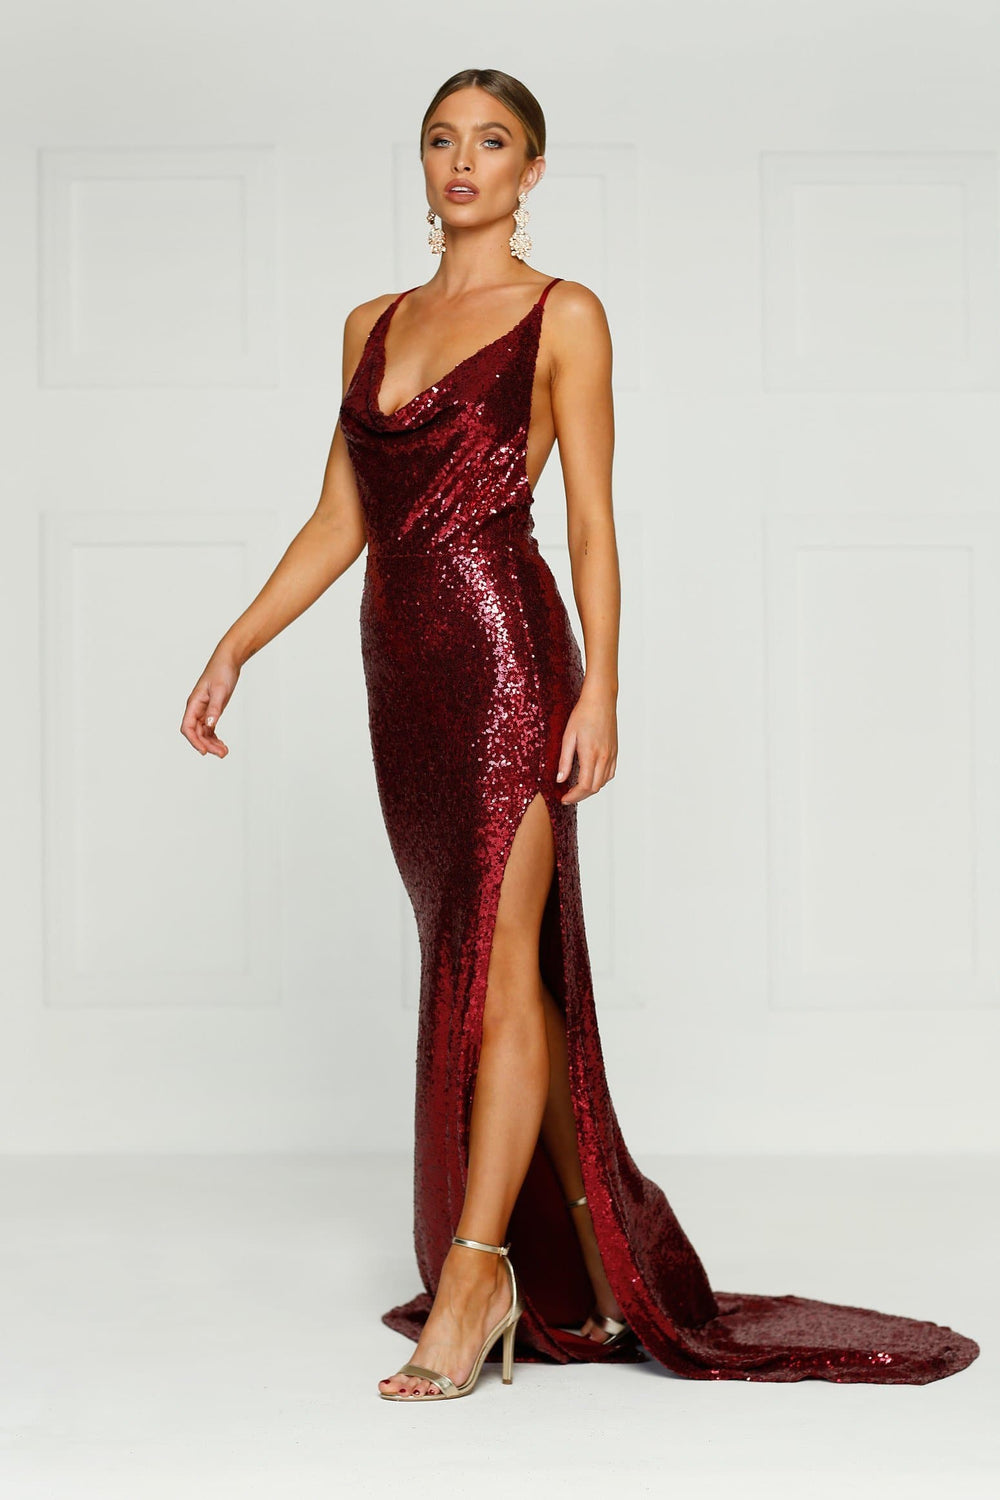 Andriana - Burgundy Sequin Gown with Cowl Neck b0938f296